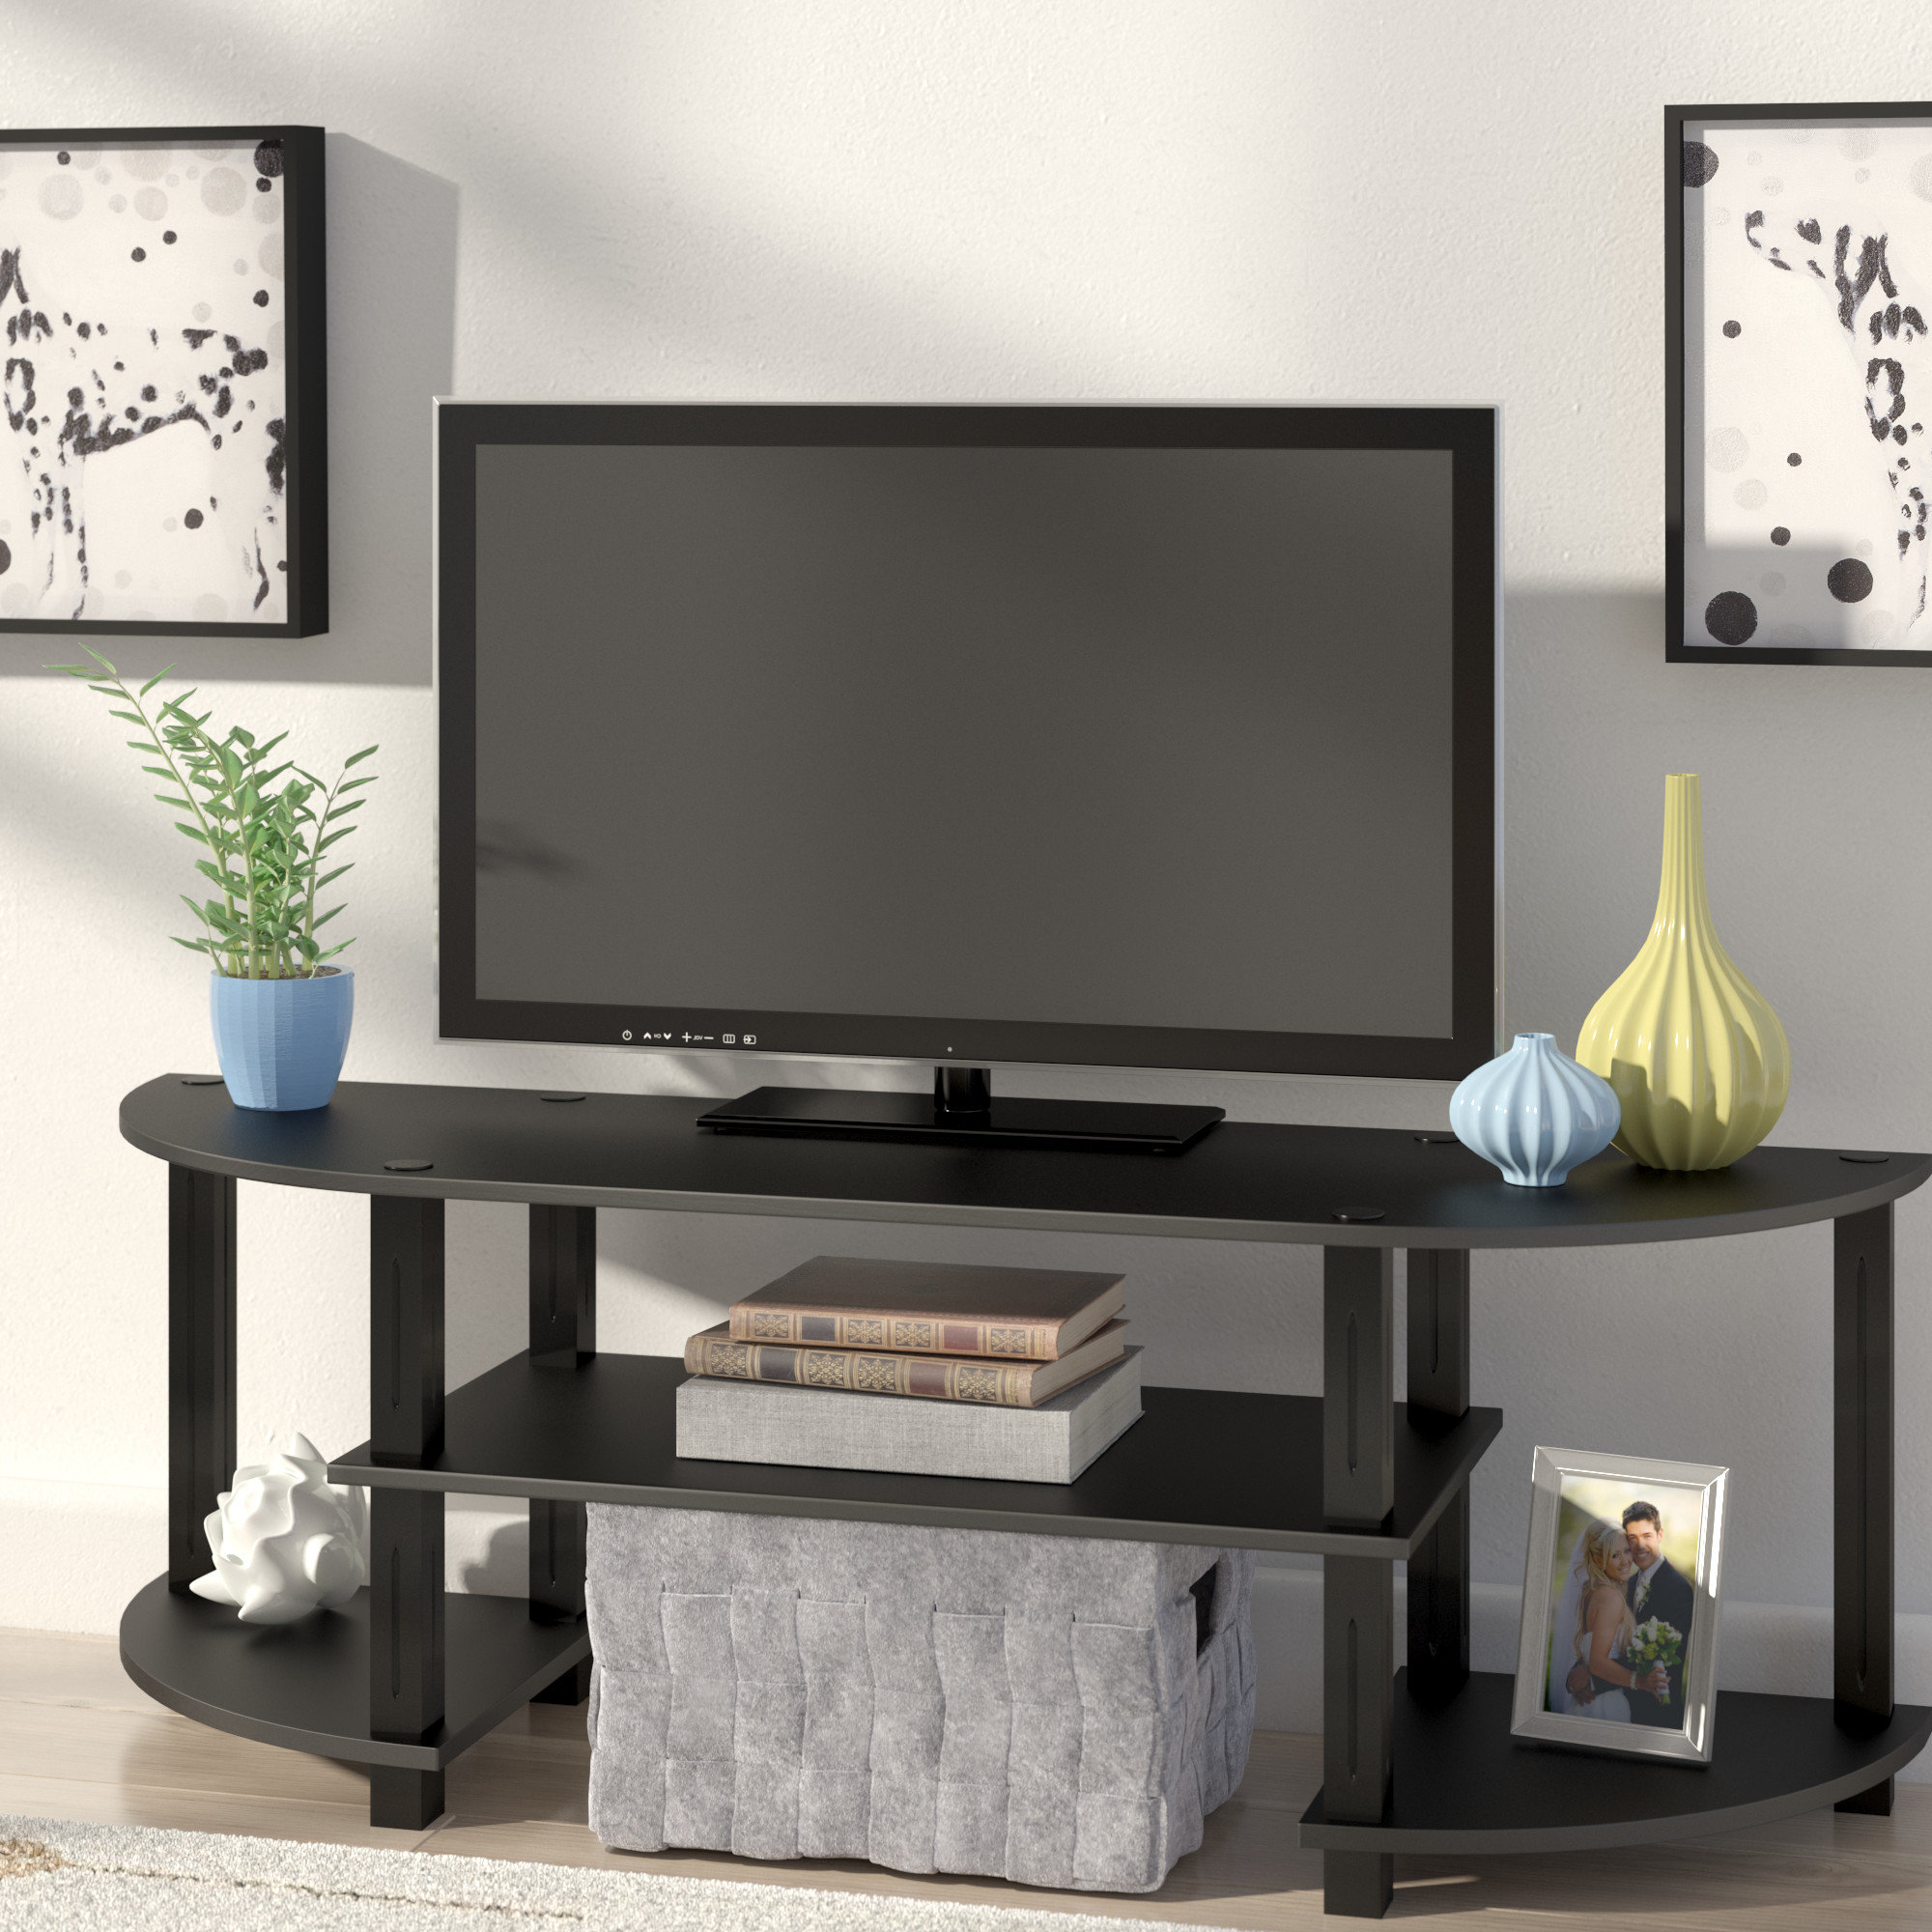 72 Inch Tv Stand | Wayfair With Regard To Laurent 60 Inch Tv Stands (View 13 of 20)